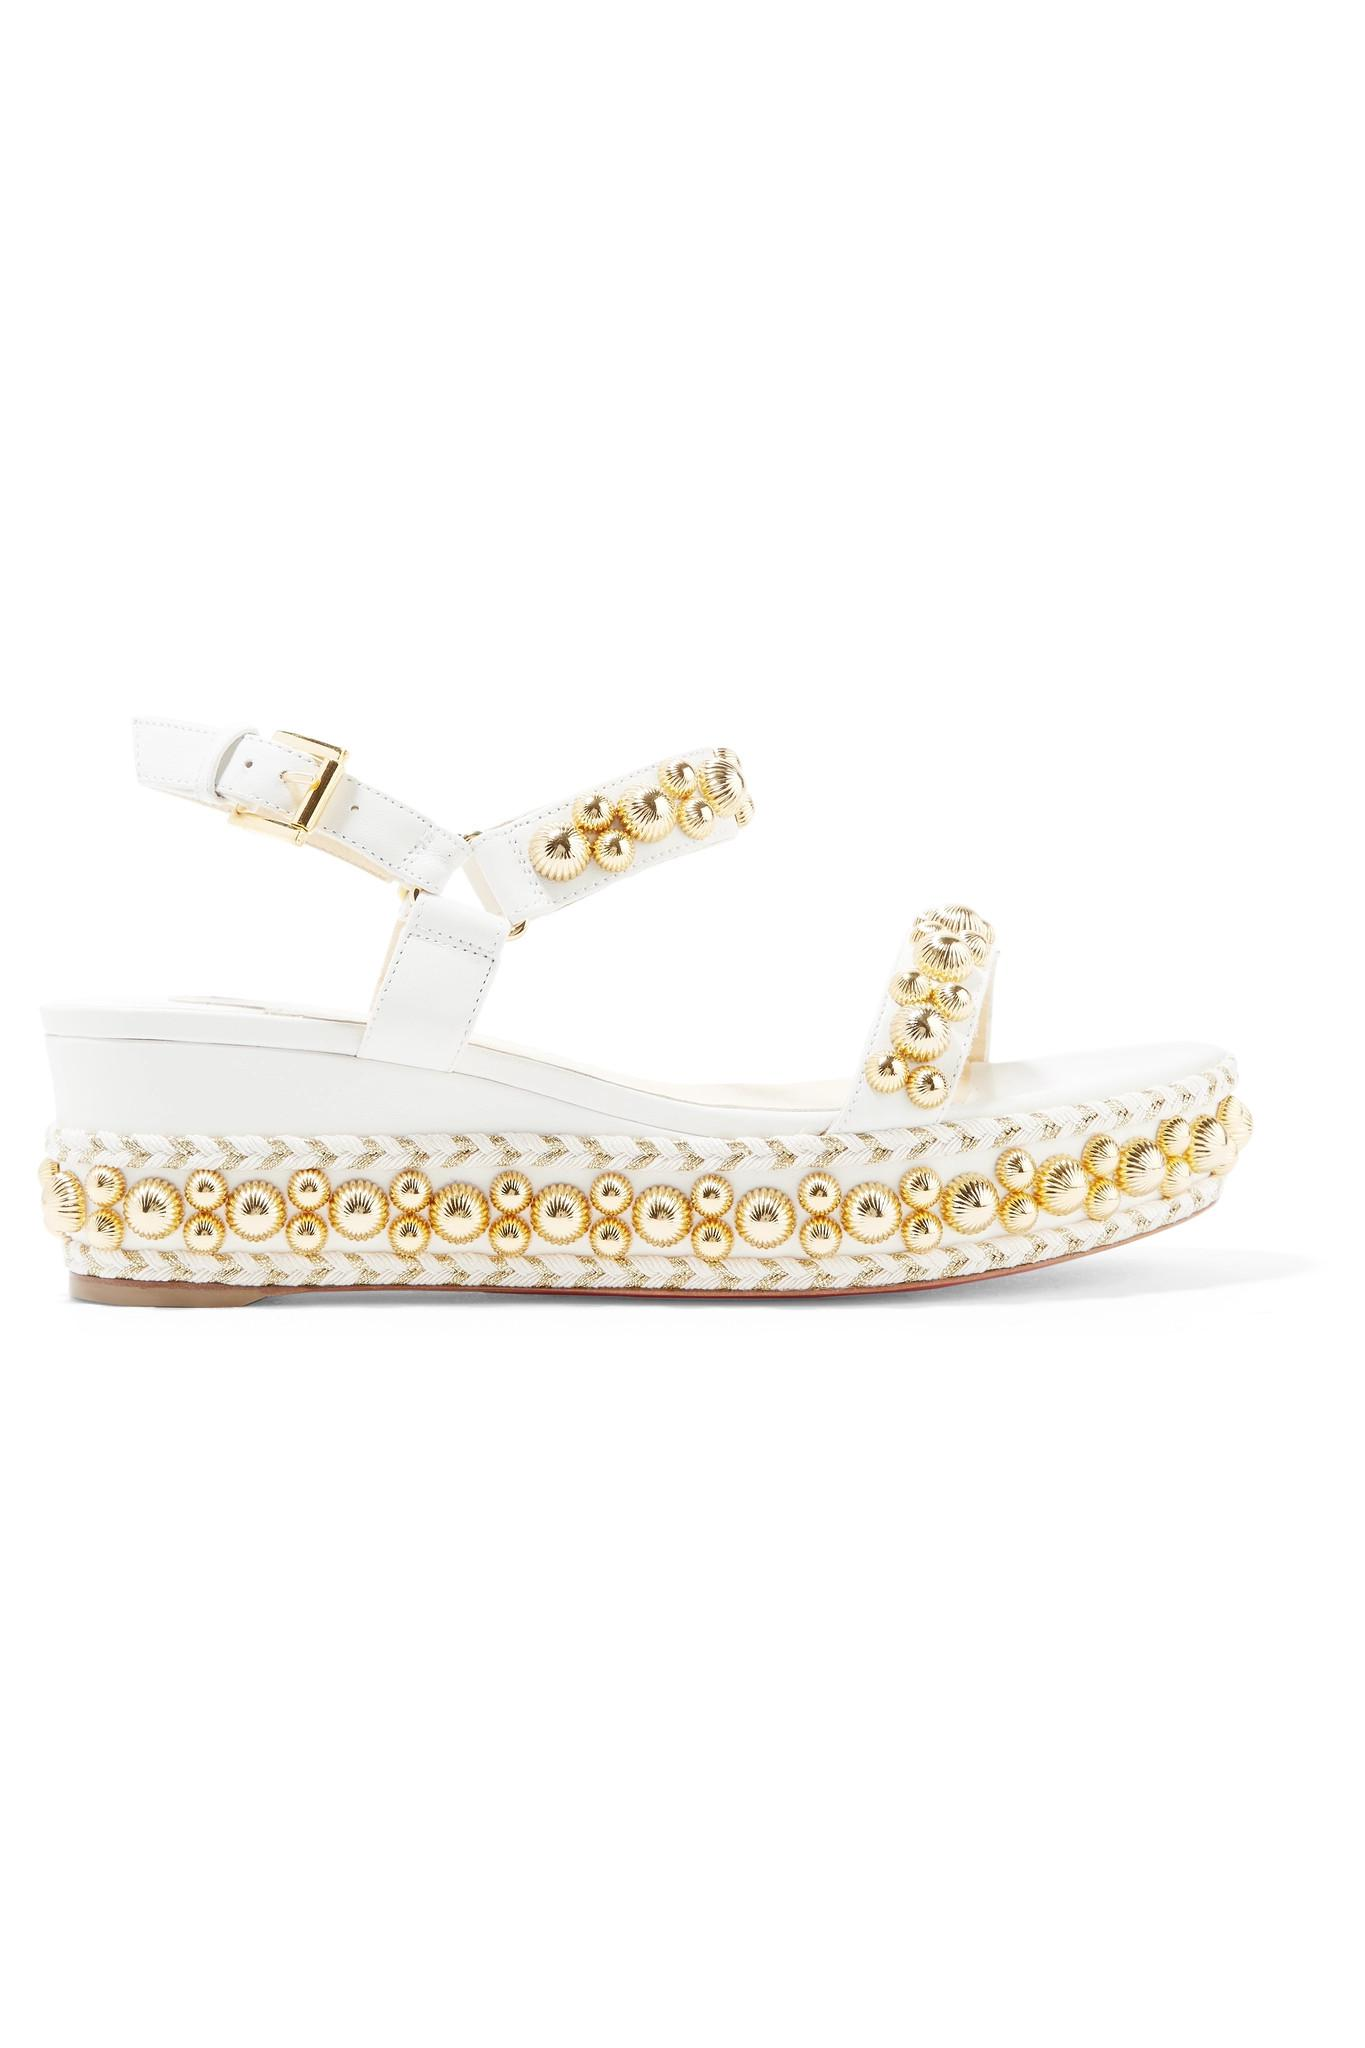 66facbd4374 Lyst - Christian Louboutin Rondaclou 60 Studded Leather Wedge Sandals